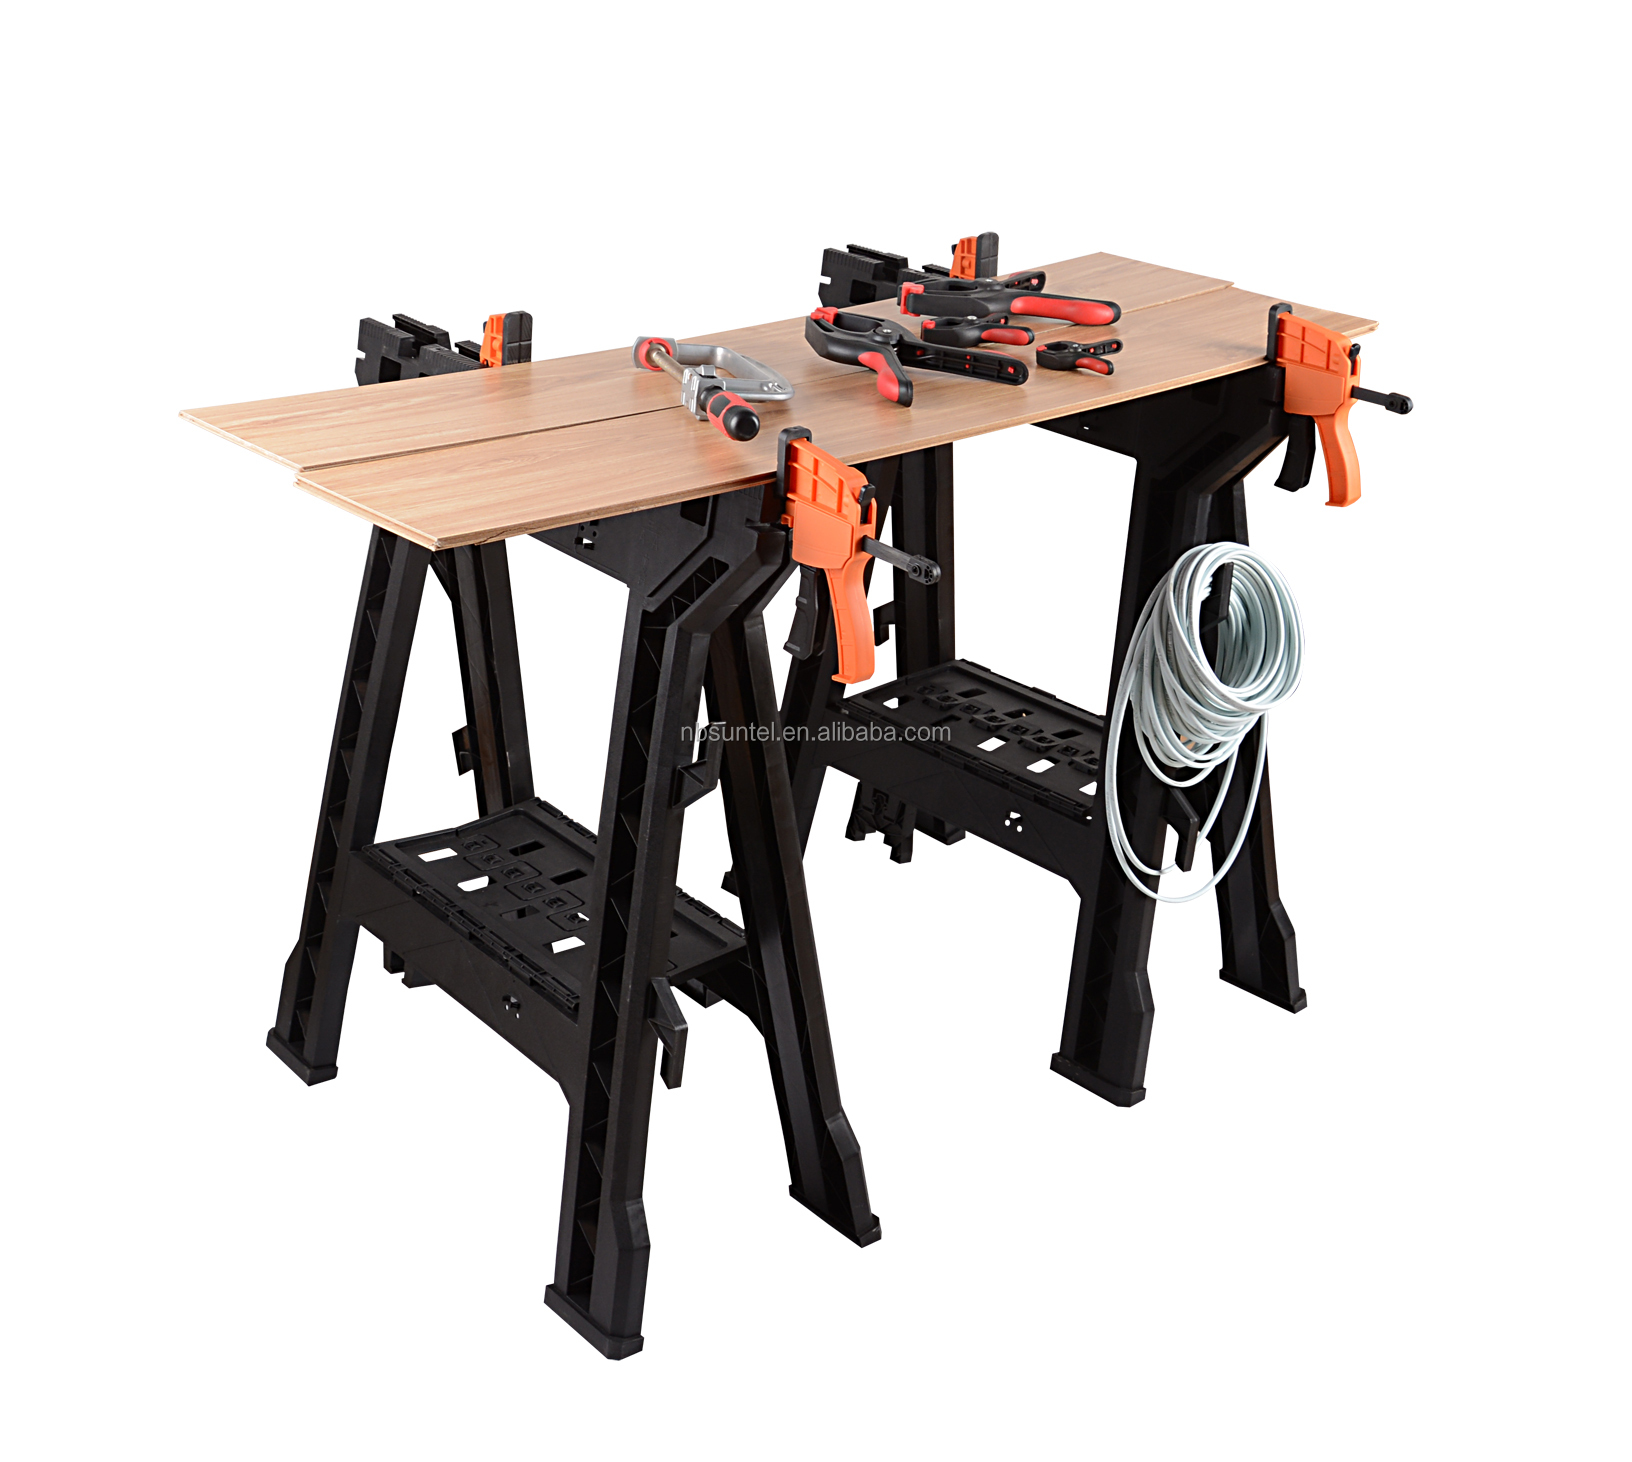 Astounding Heavy Duty Plastic Clamping Work Bench Folding Sawhorse Set For Garden Buy Heavy Duty Saw Horses Clamping Work Bench Heavy Duty Plastic Folding Beatyapartments Chair Design Images Beatyapartmentscom